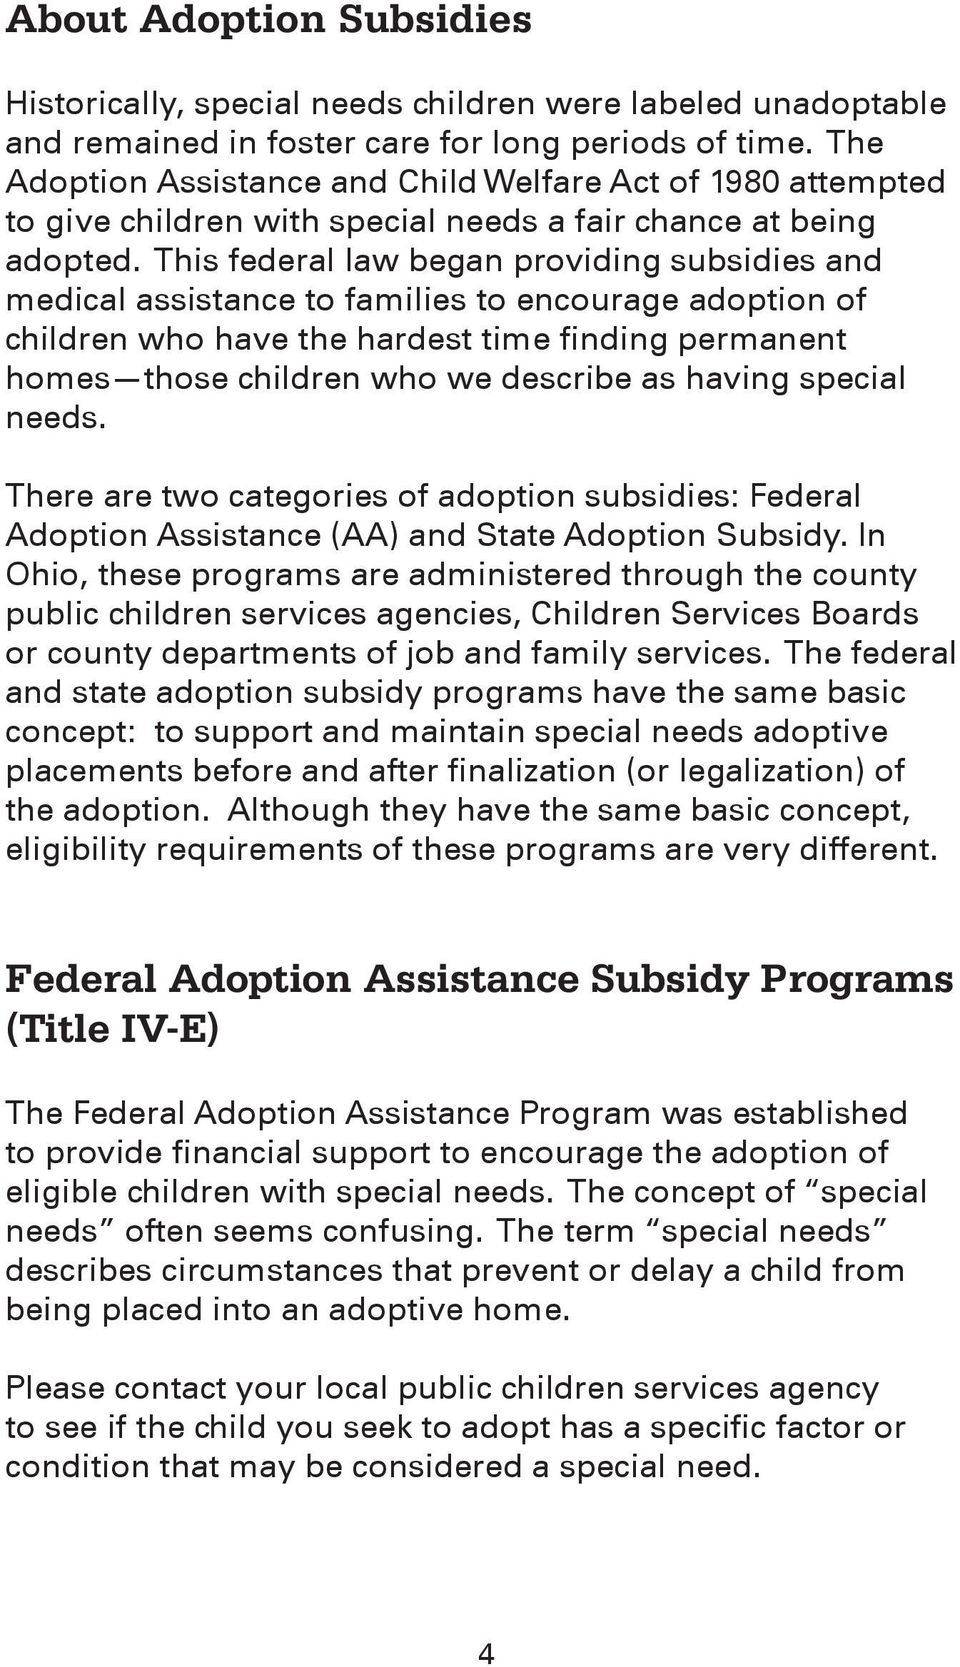 This federal law began providing subsidies and medical assistance to families to encourage adoption of children who have the hardest time finding permanent homes those children who we describe as